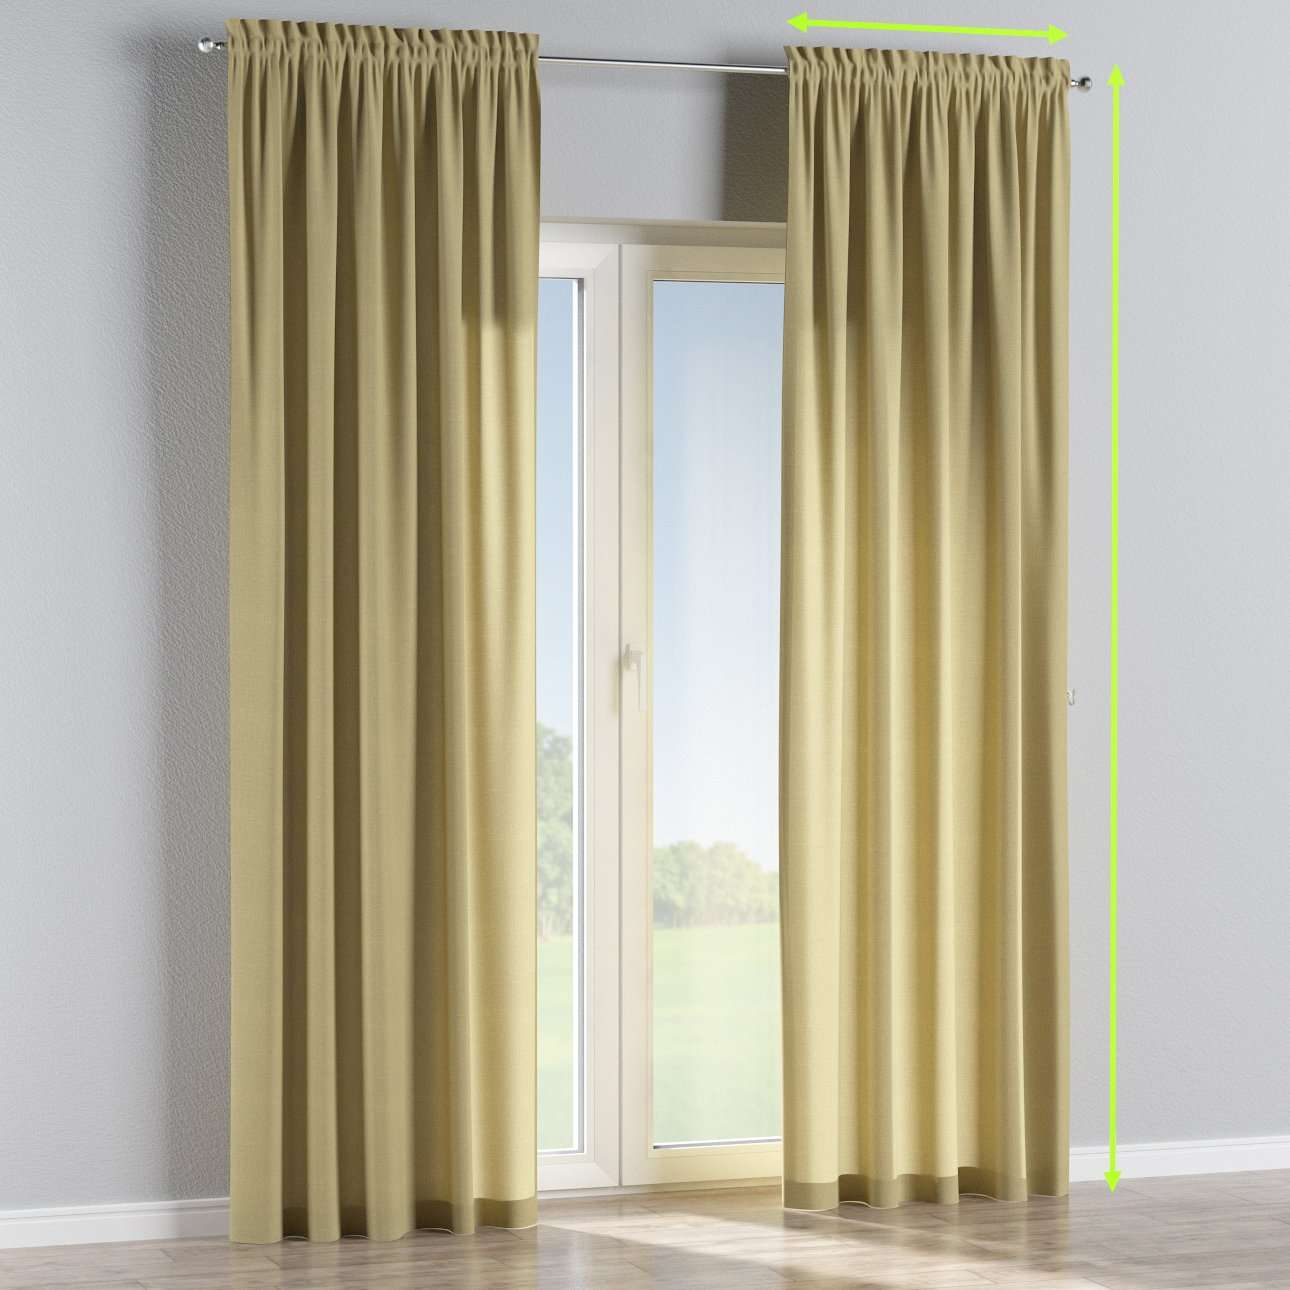 Slot and frill curtains in collection Cardiff, fabric: 136-22